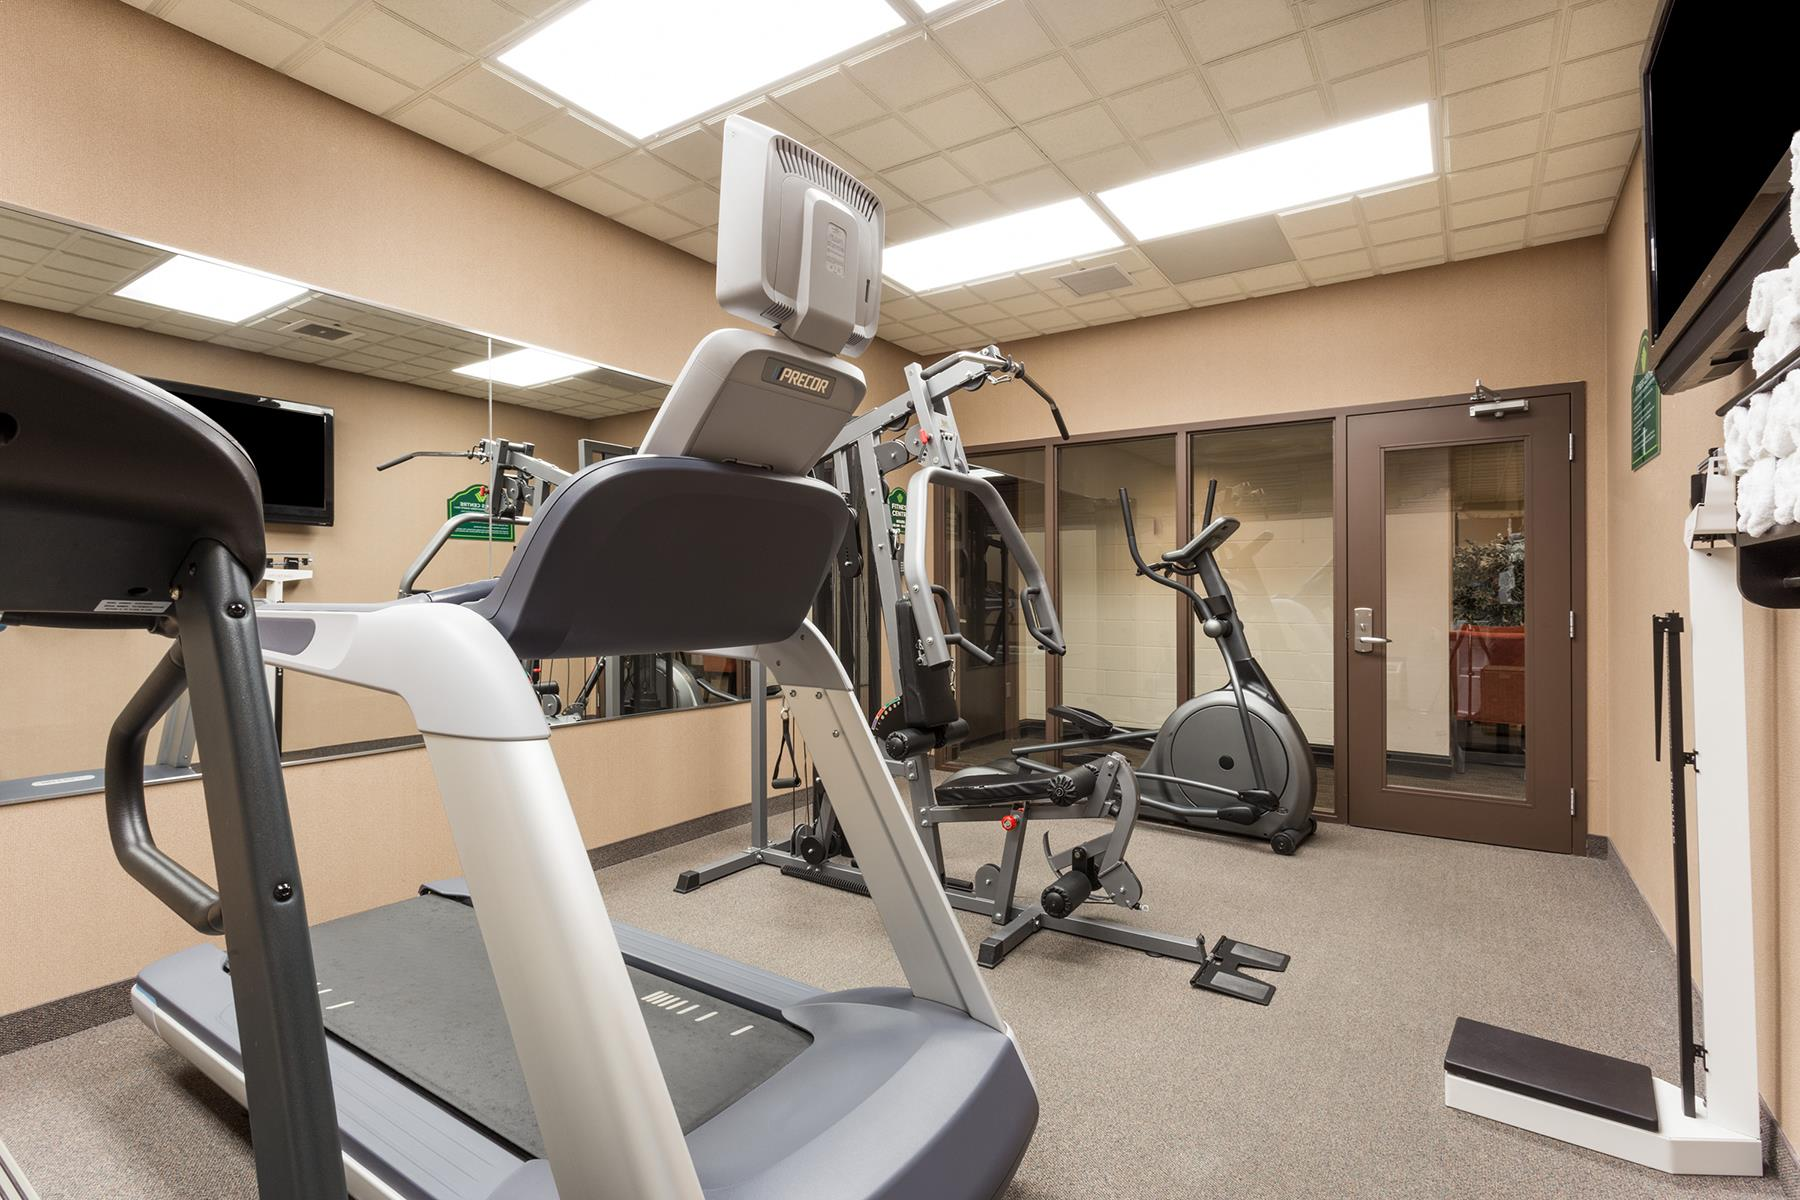 An exercising room with treadmills, a bike and a lifting machine in the Wingate by Wyndham hotel in Regina SK